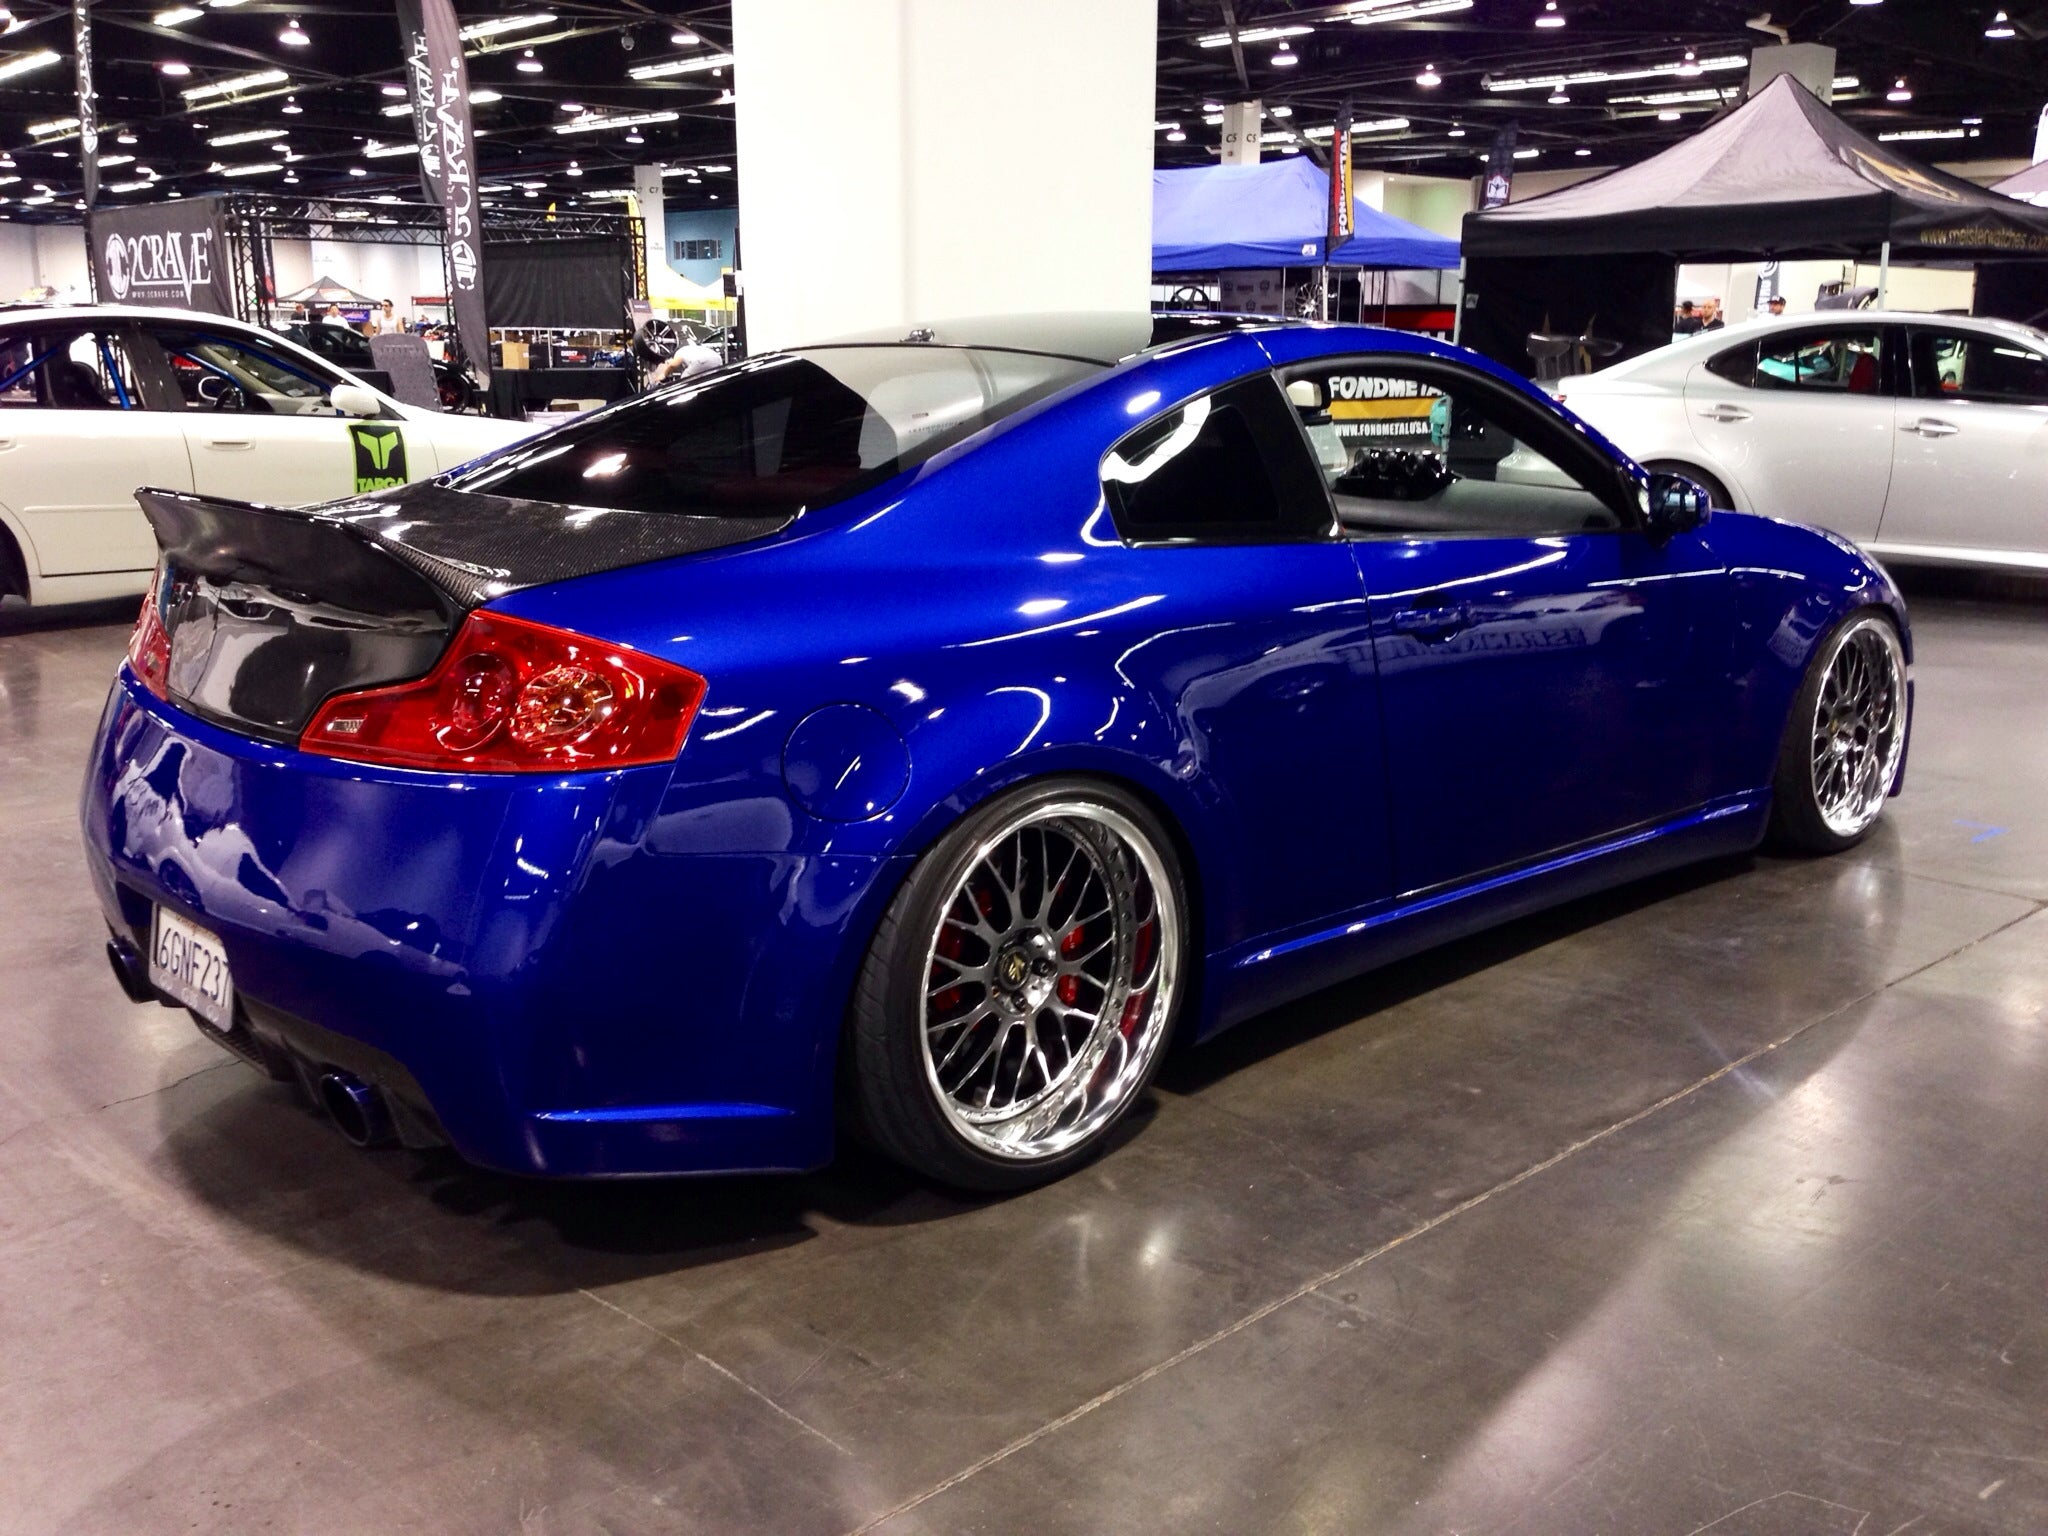 Fab Vilches' Vortech Supercharged G35